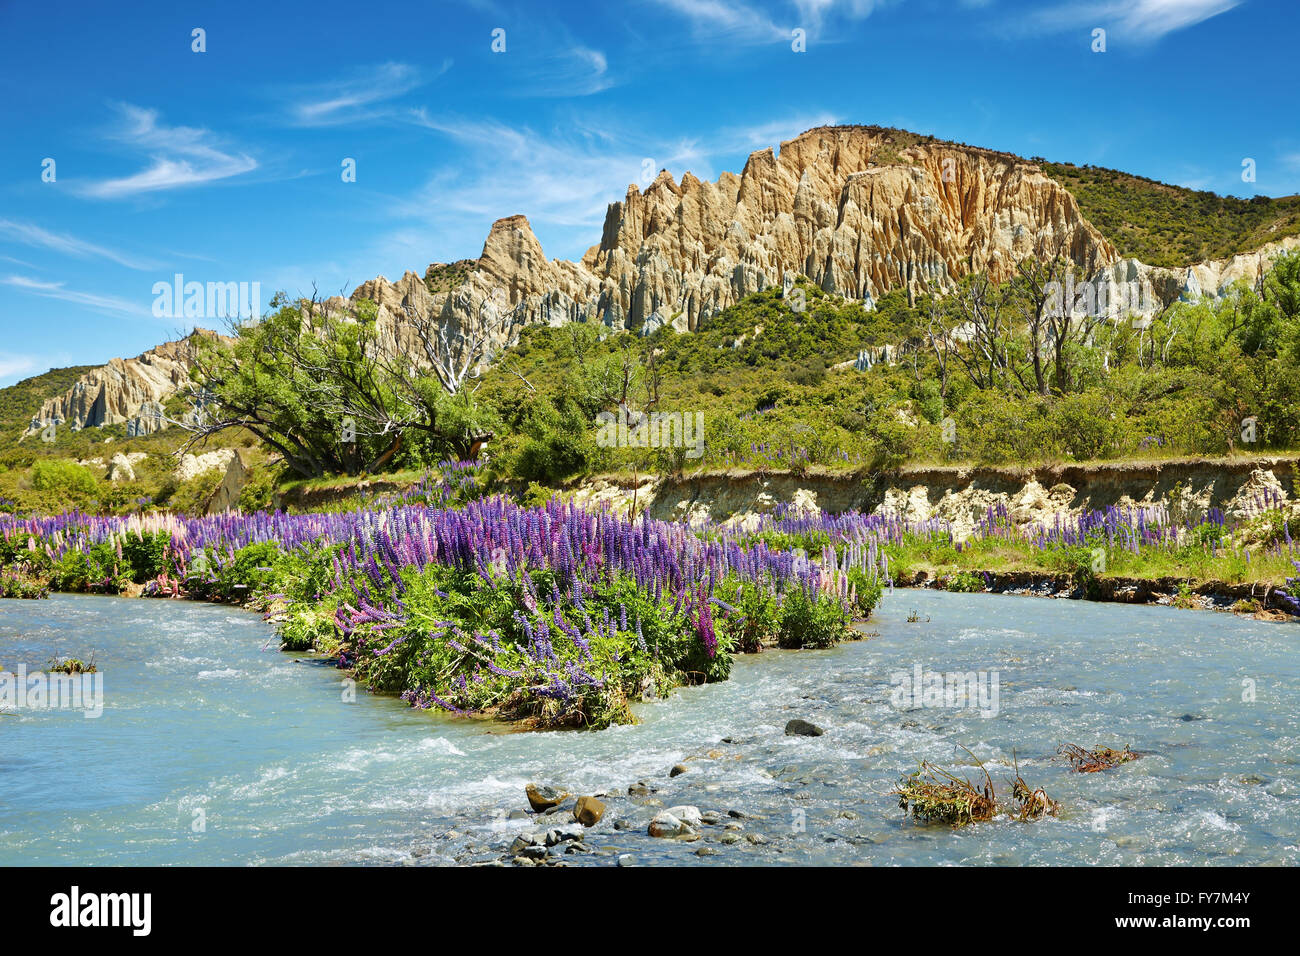 Clay Cliffs Scenic Reserve, New Zealand - Stock Image